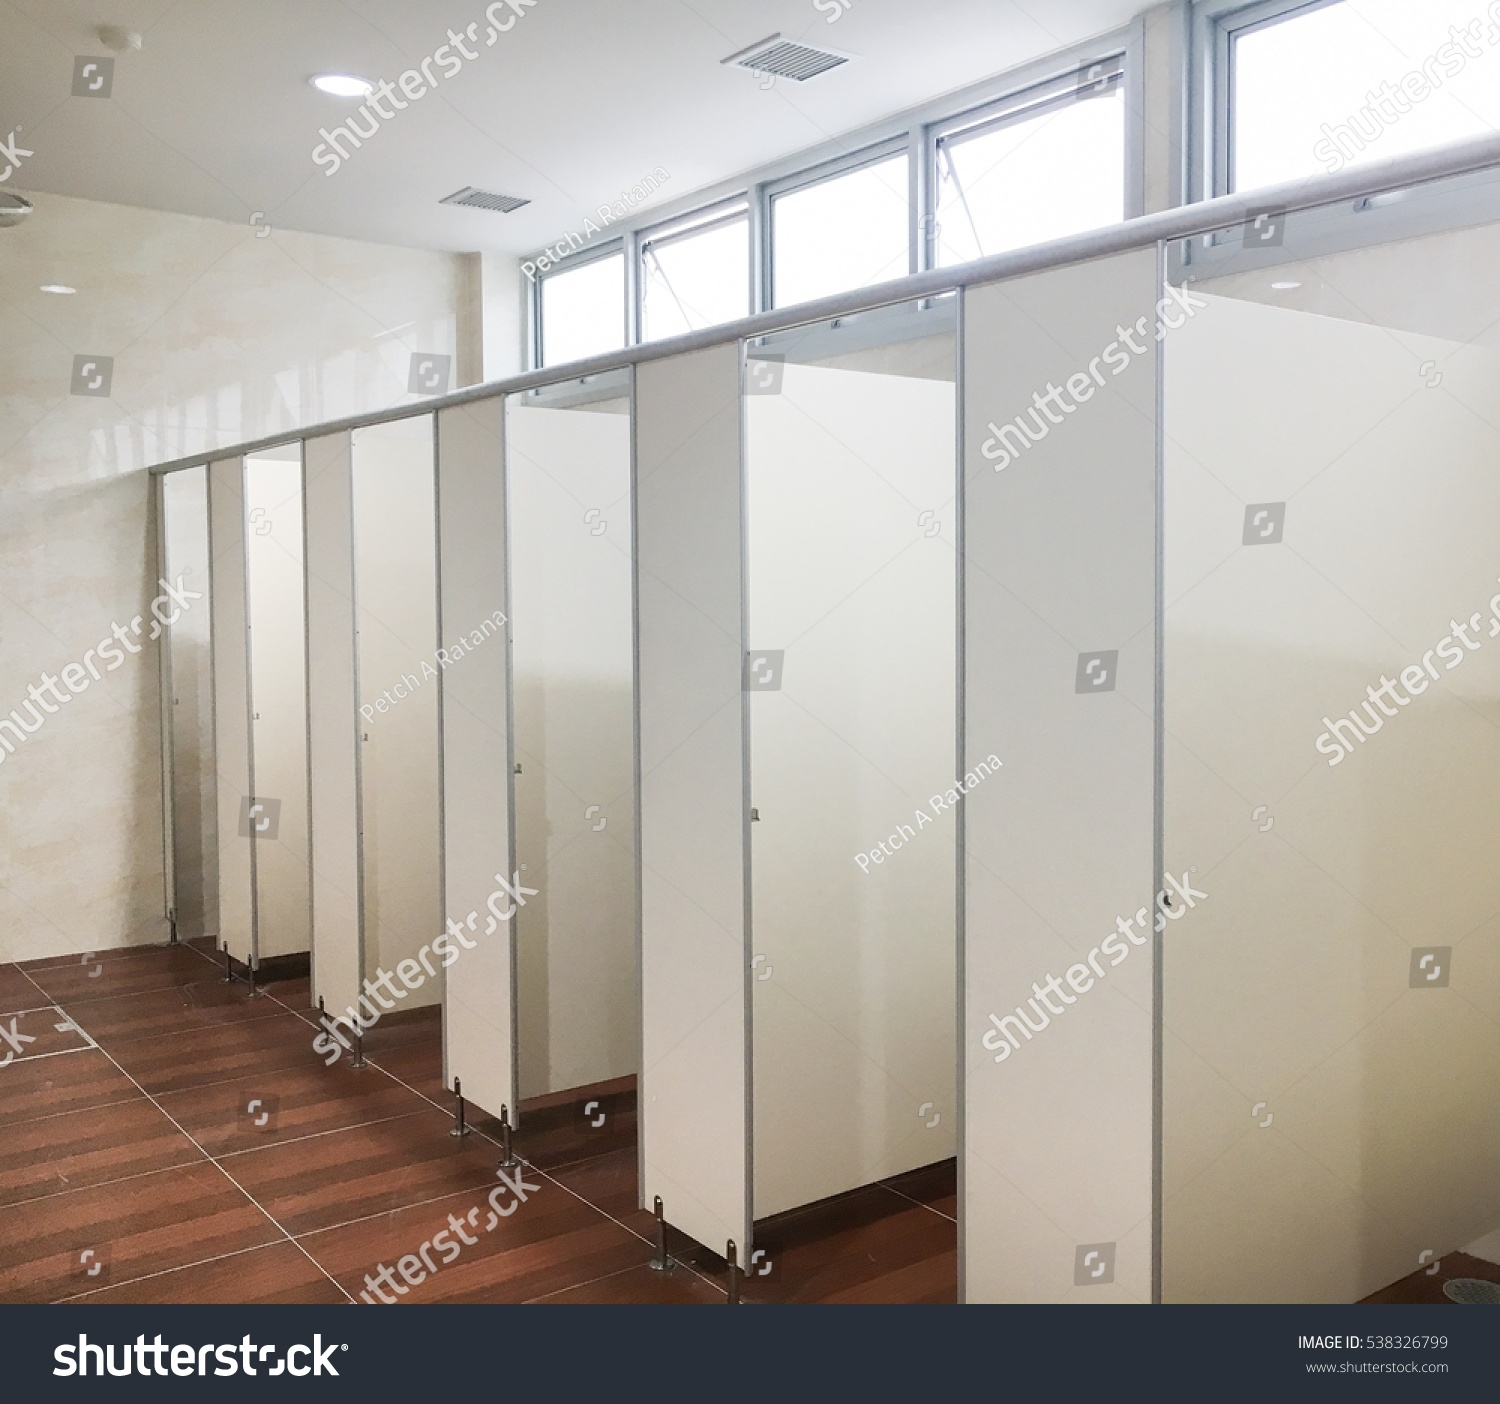 New toilet room white particle board stock photo 538326799 new toilet room white particle board for room wall brown ceramic tiles for floor dailygadgetfo Gallery